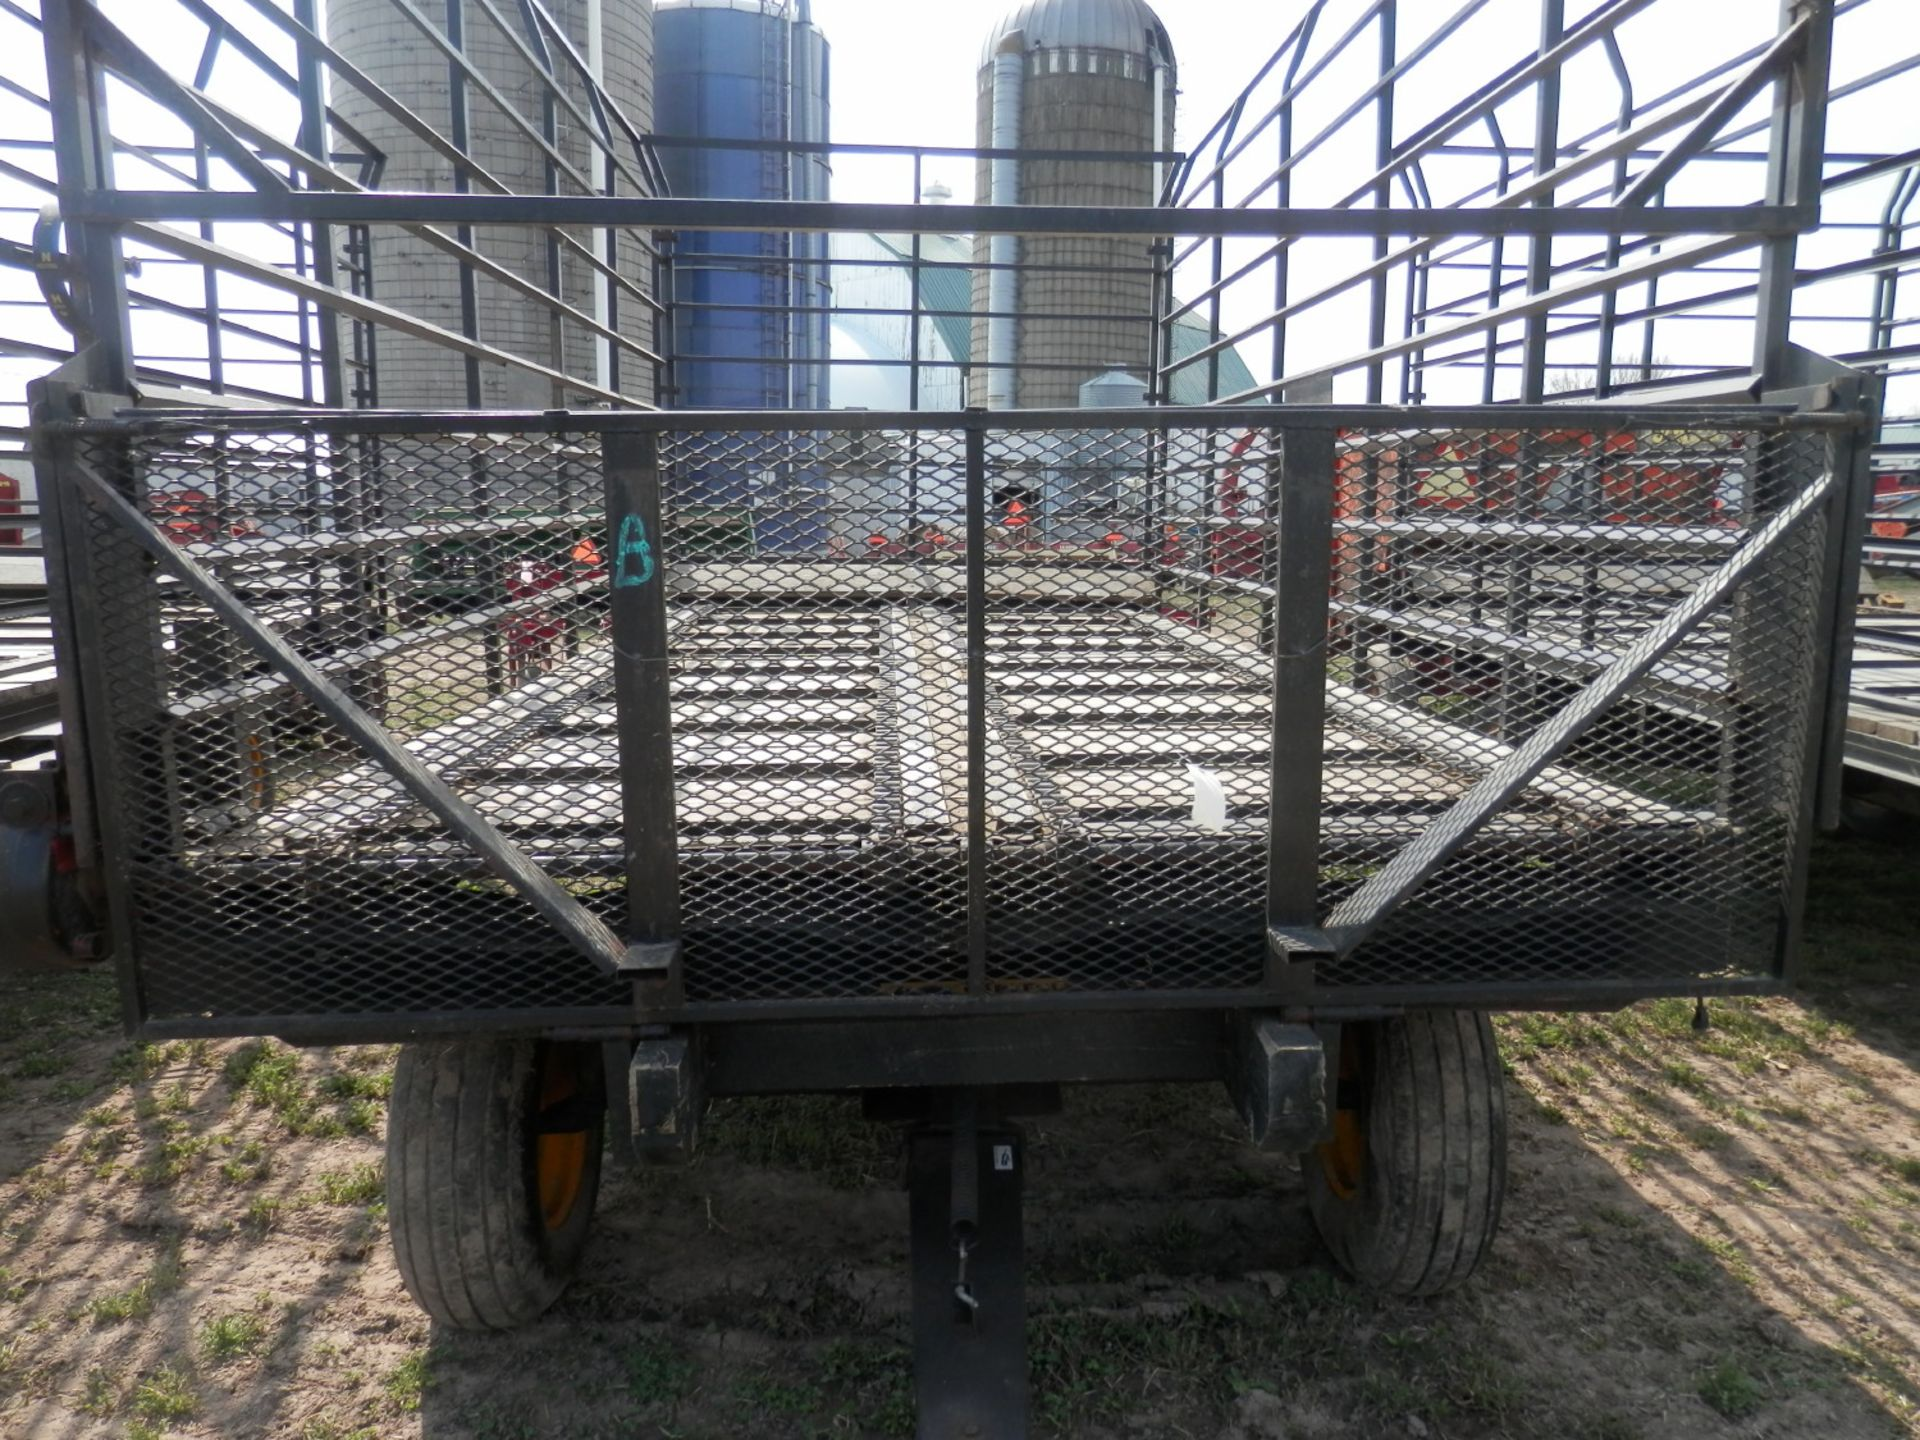 GRUETT 9X18 STEEL SIDE KICK BALE WAGONS, 3 AVAILABLE, SELLING CHOICE - Image 5 of 7